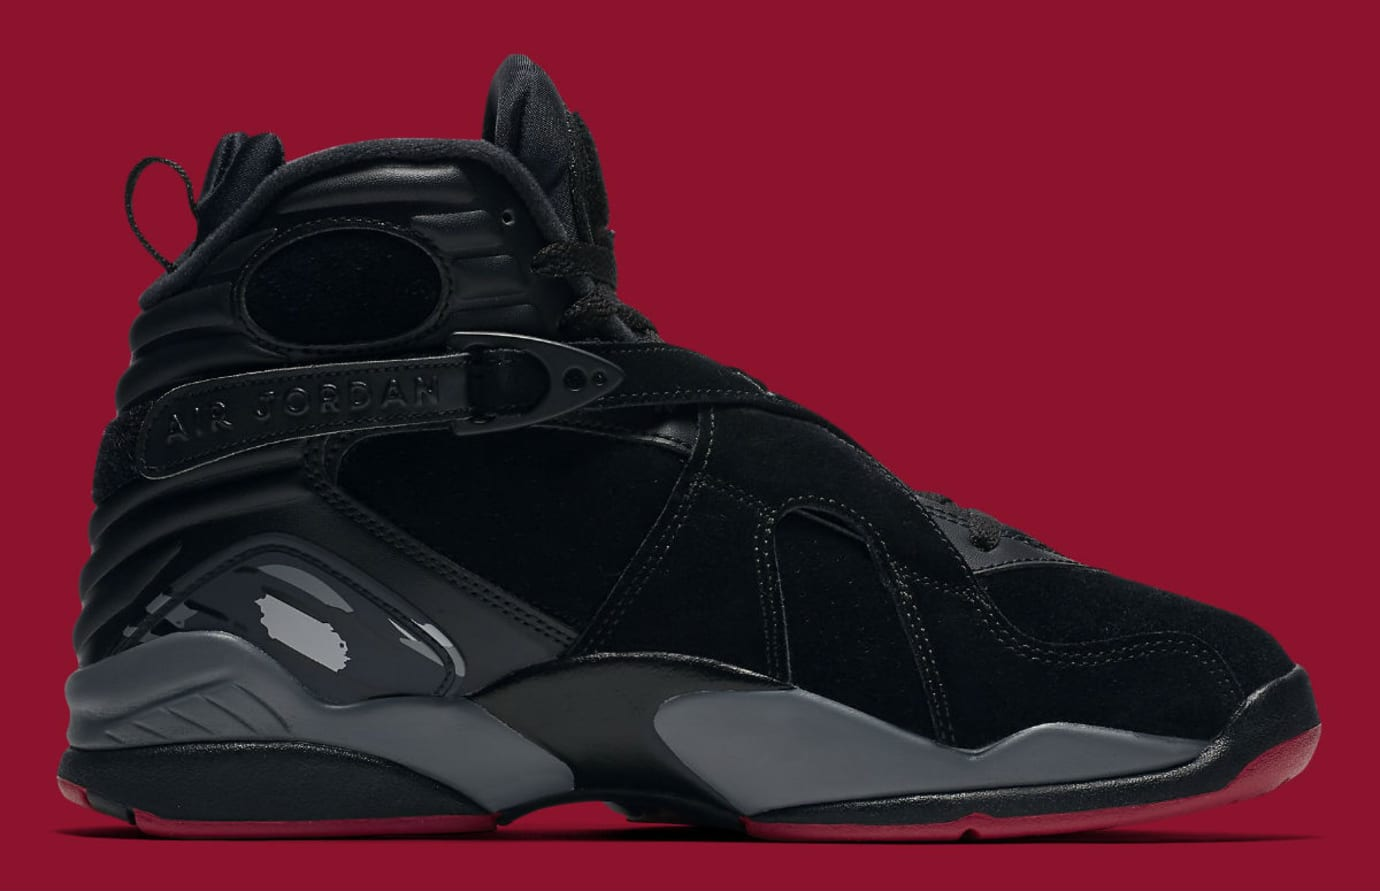 3f4a704f2d92 Air Jordan 8 Bred Black Gym Red Wolf Grey Release Date Medial 305381-022